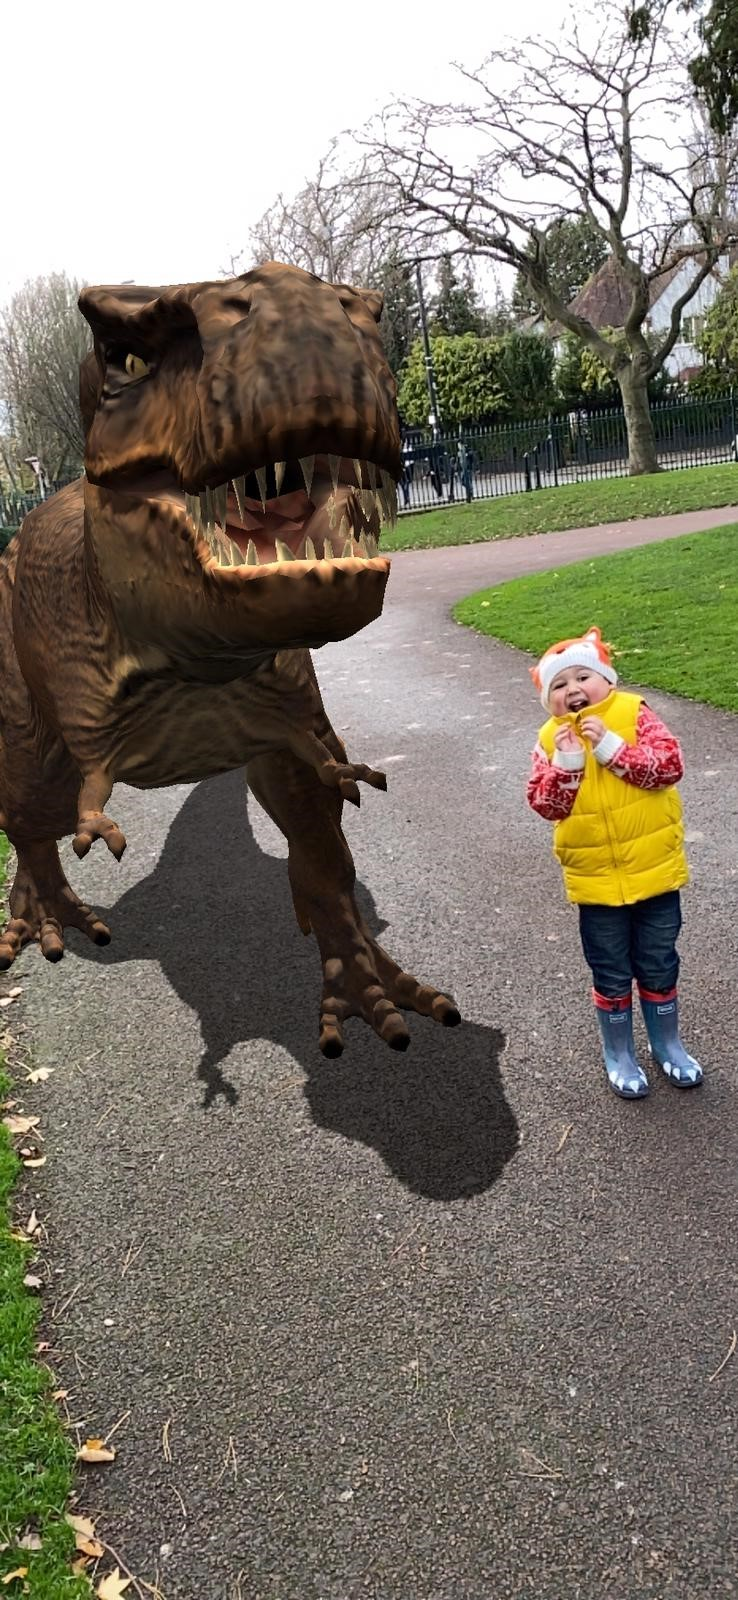 3D dinosaurs and family fun at West Jurassic Park